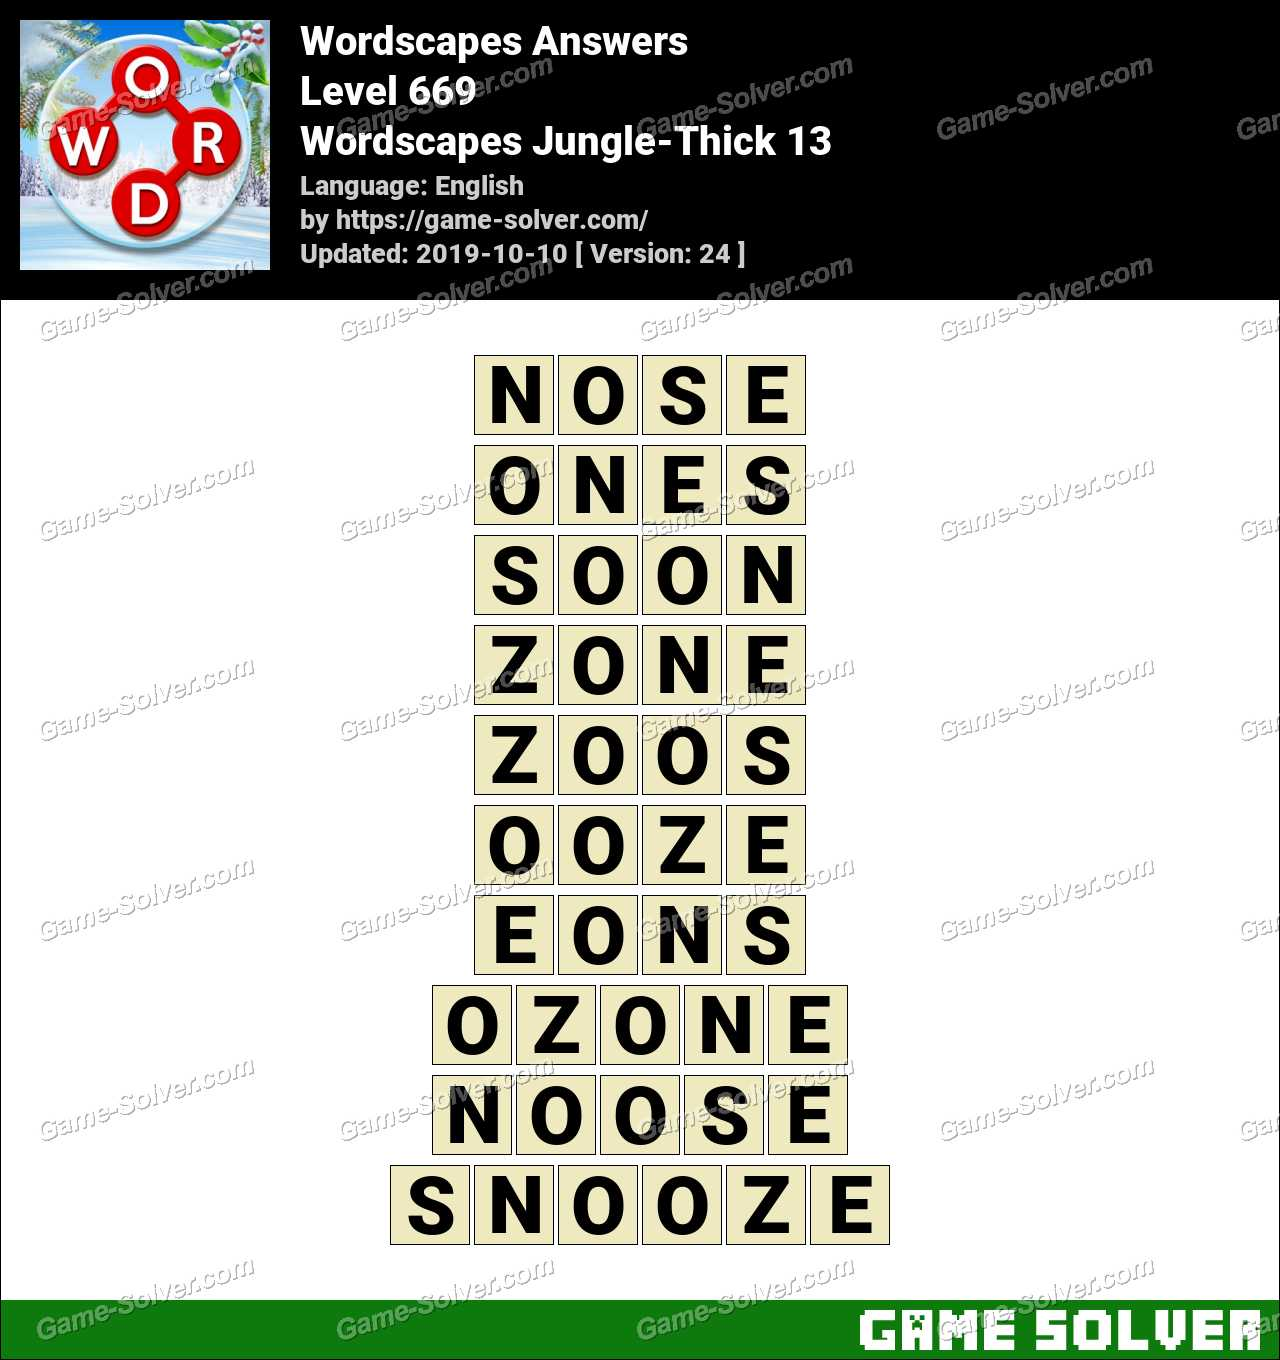 Wordscapes Jungle-Thick 13 Answers